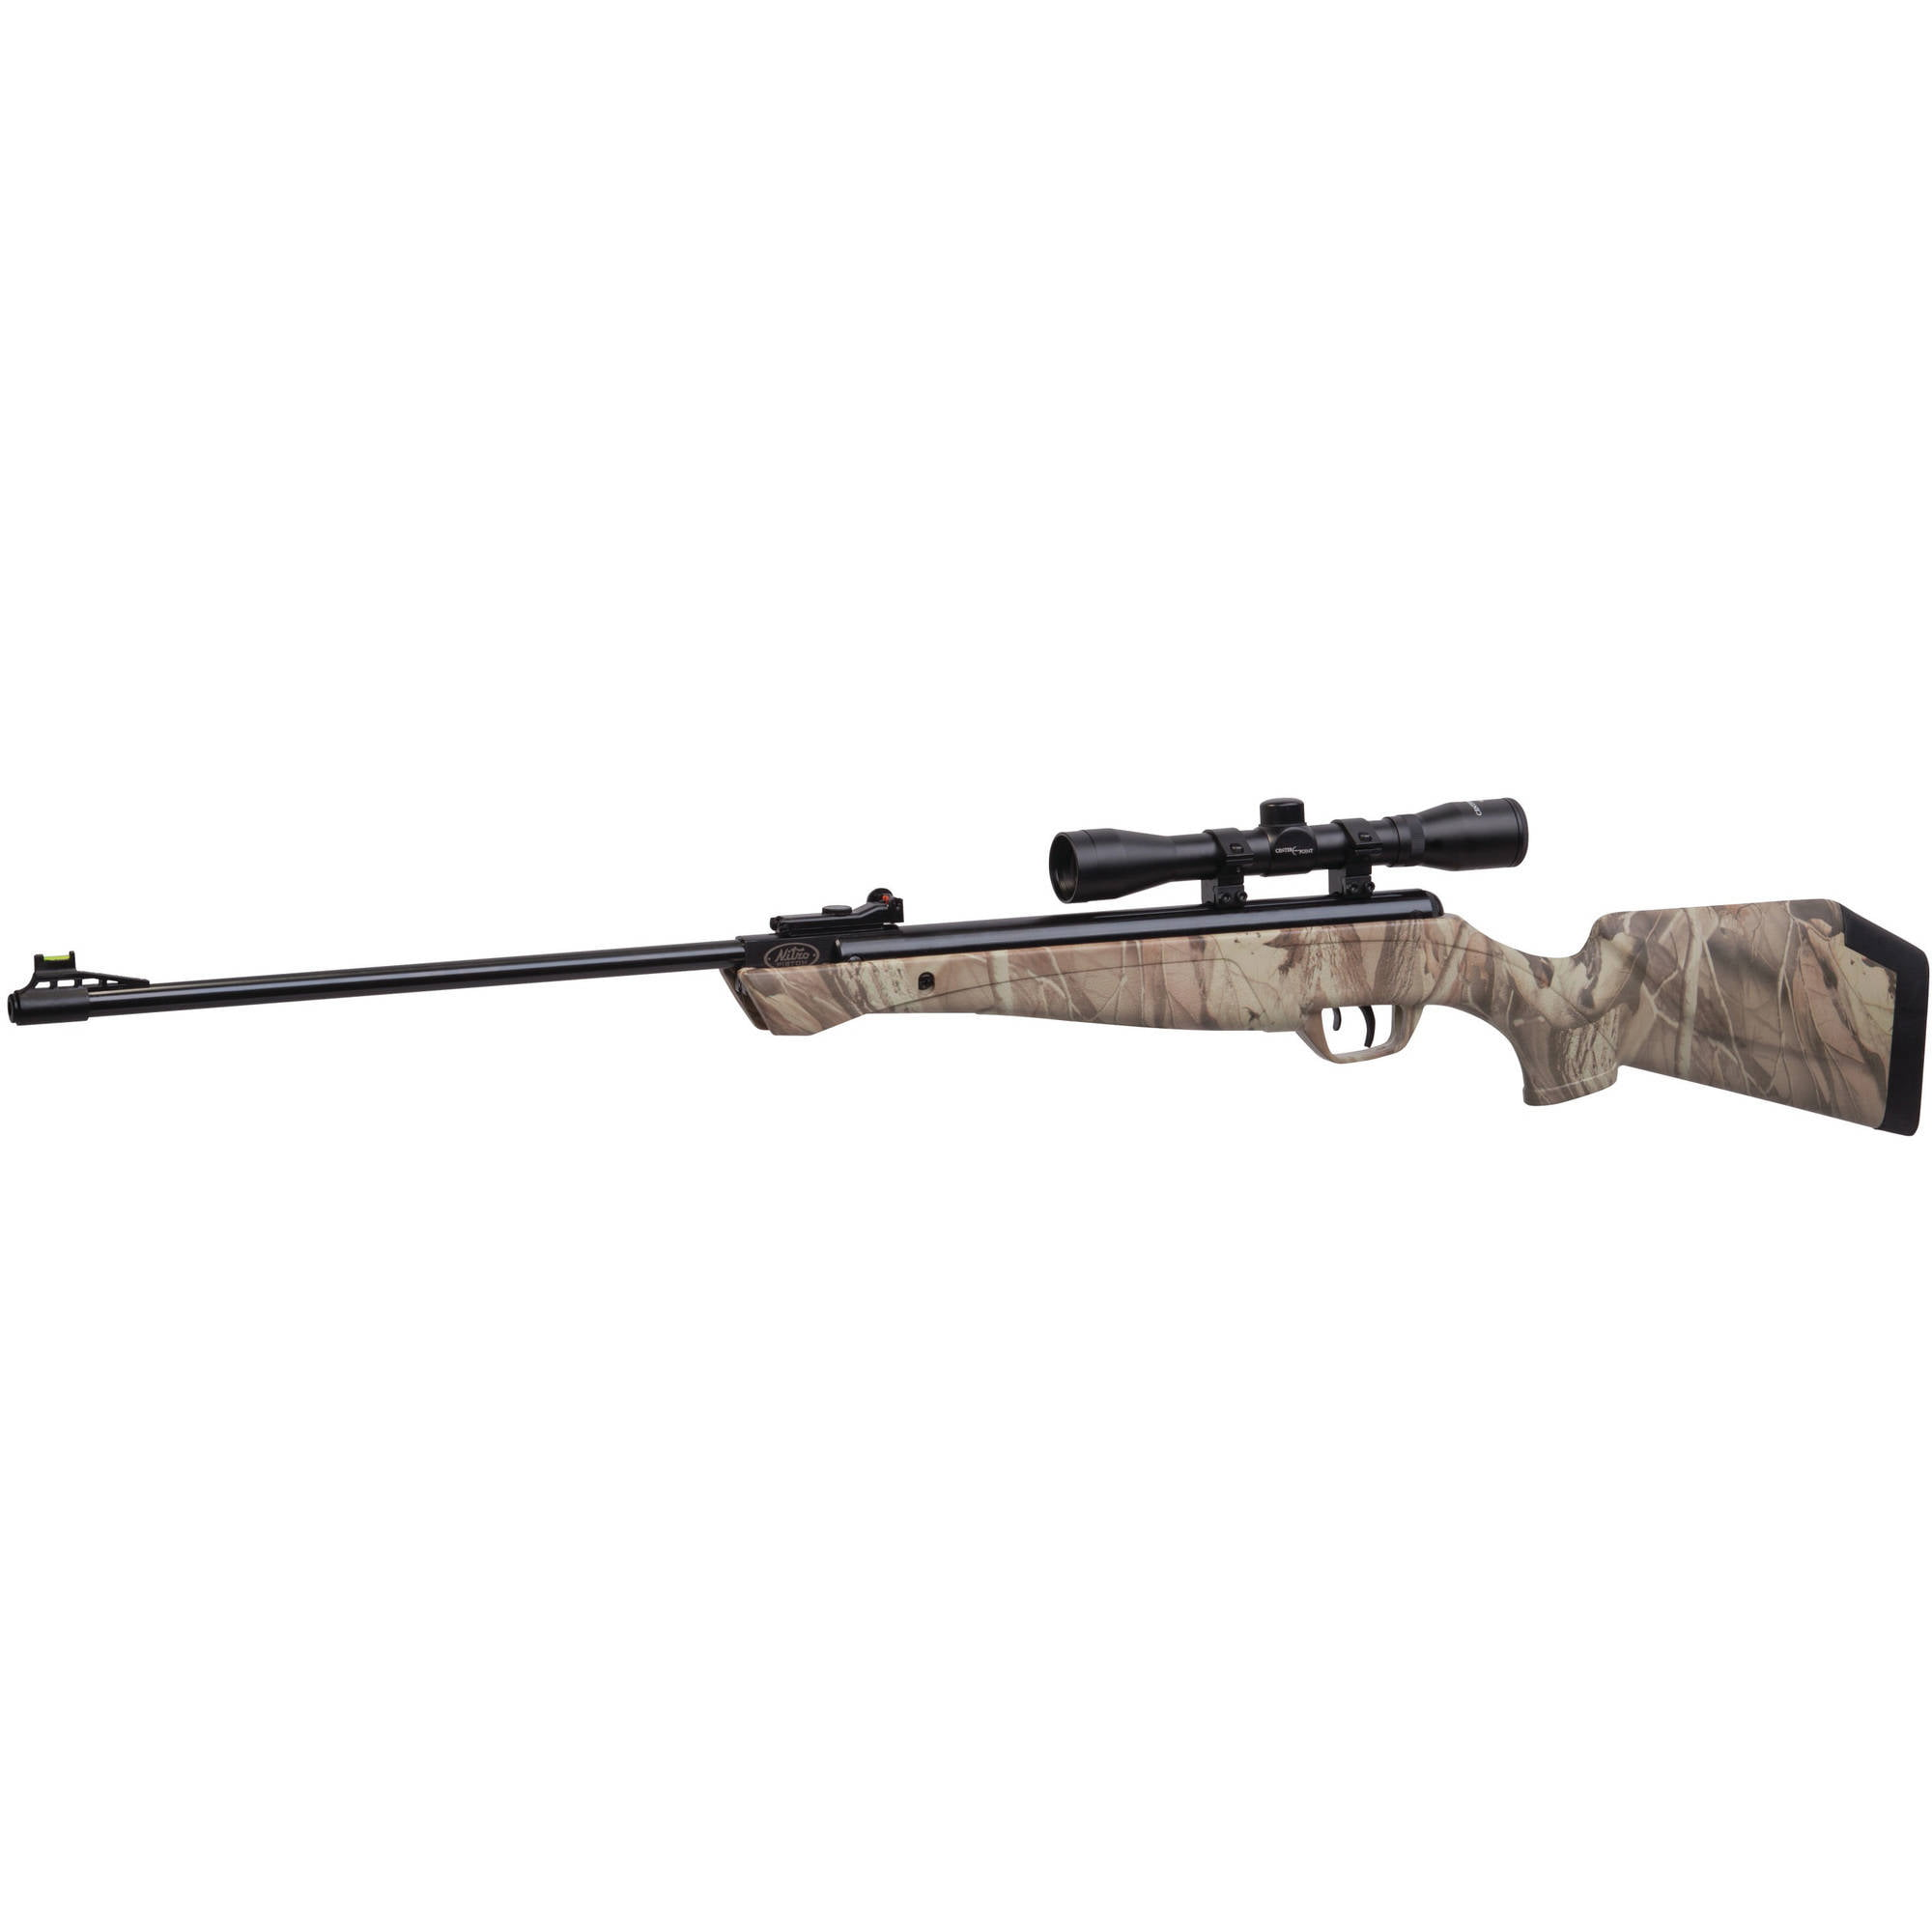 Crosman Phantom Hunter Camo NP .177 Caliber Break Barrel Air Rifle with Scope, 1200fps by Crosman